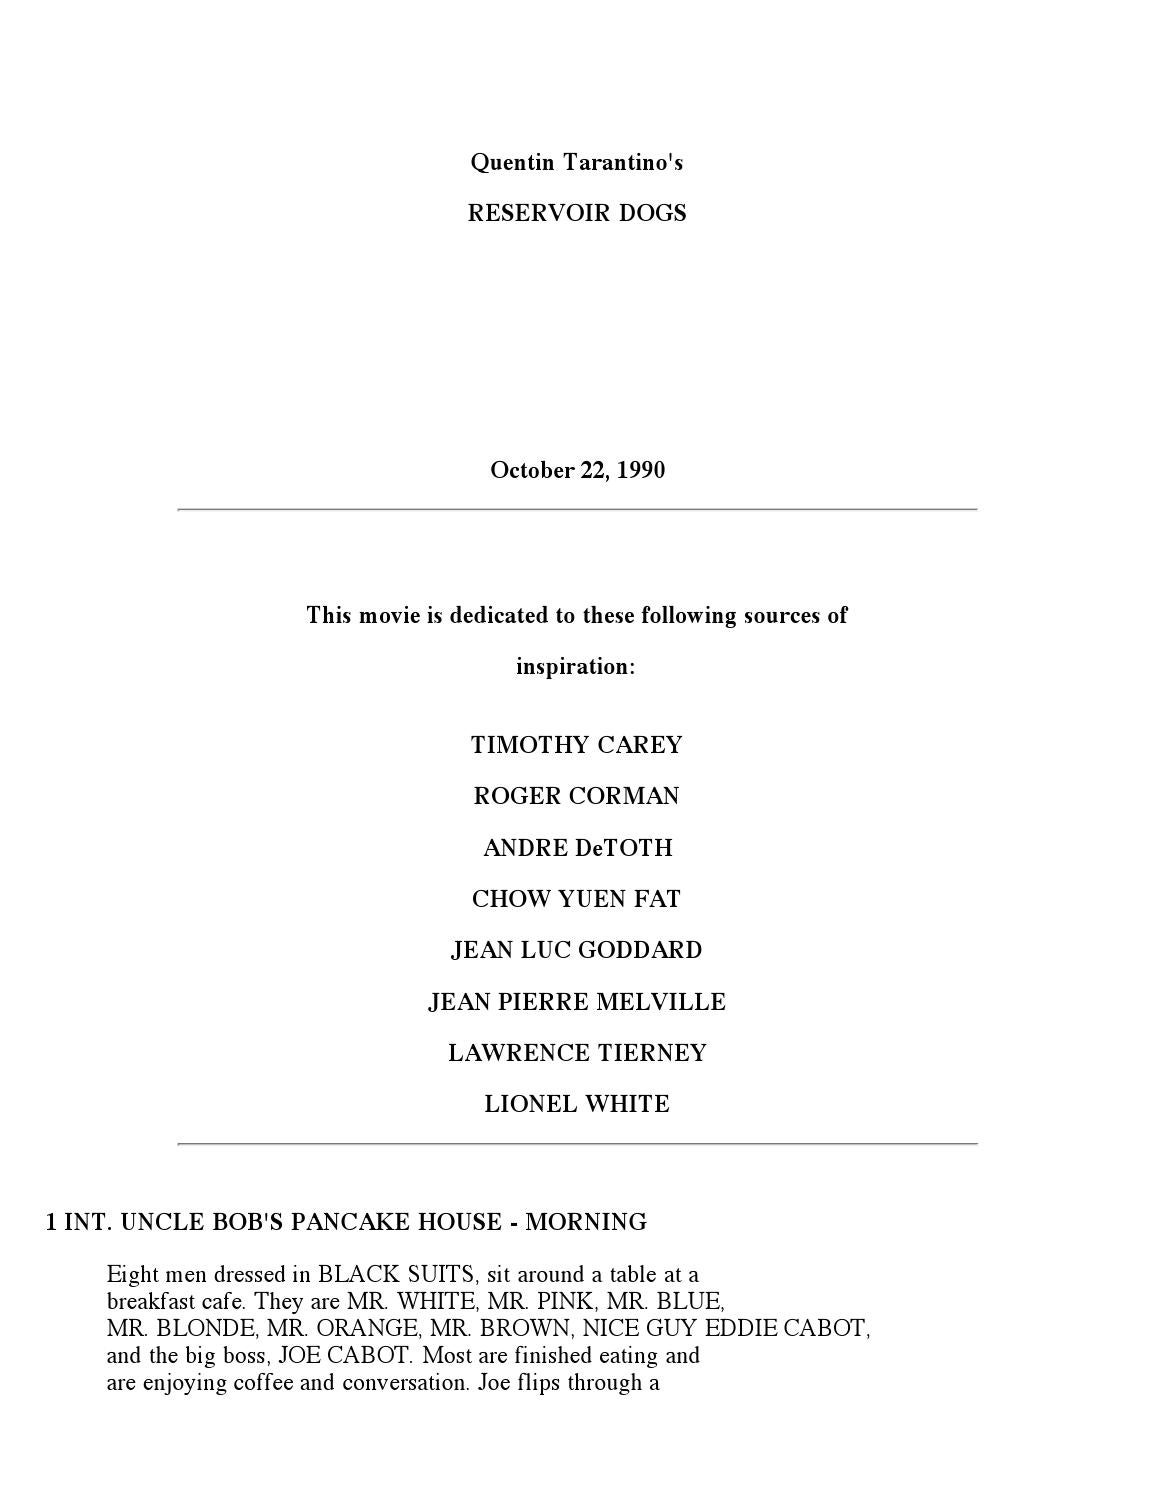 Reservoir Dogs Screenplay Pdf